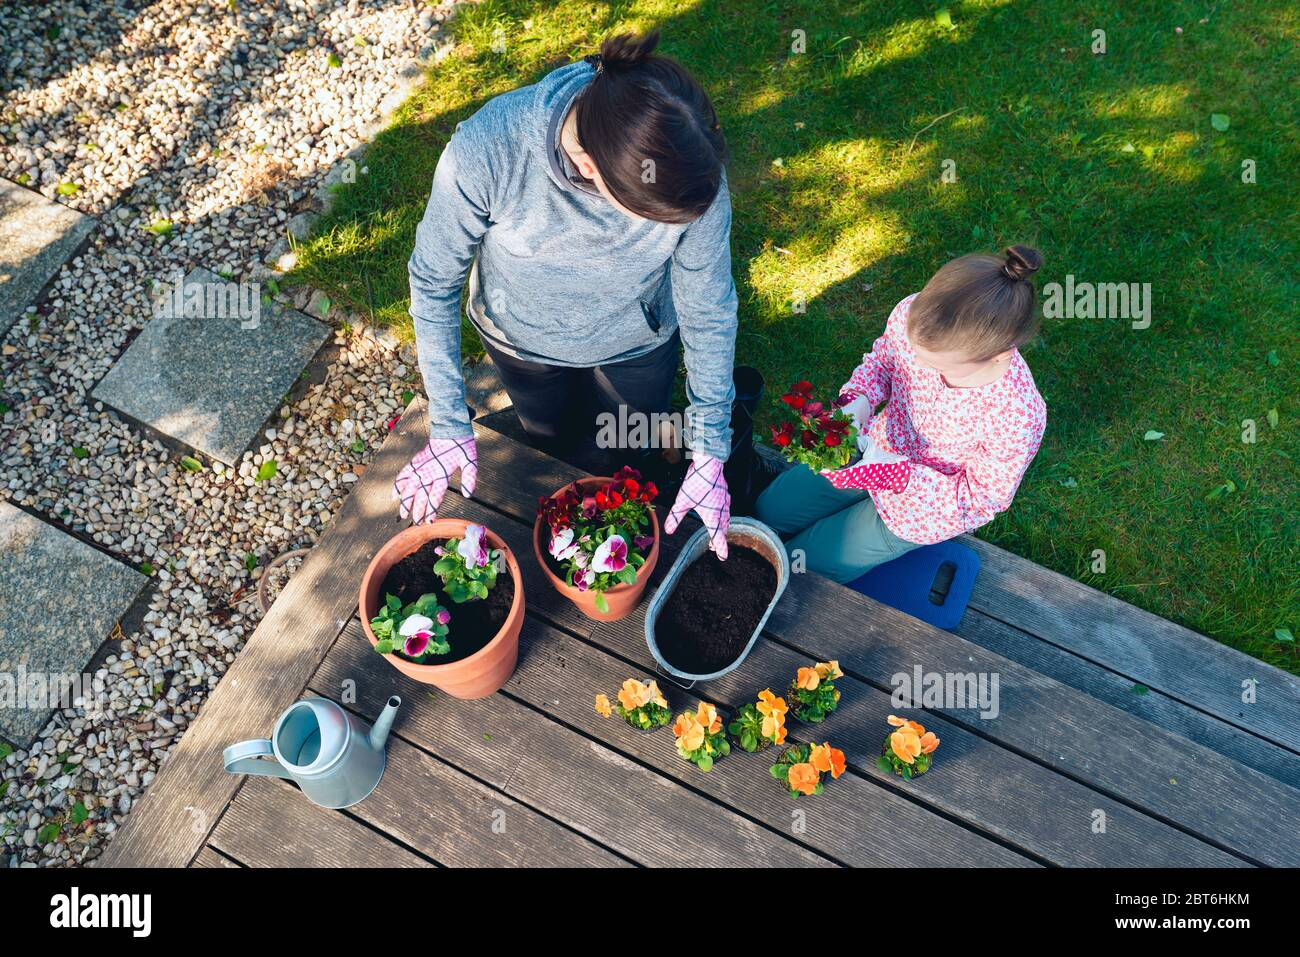 Mother and daughter planting flowers in pots in the garden - concept of working together, closeness, spending leisure time with family - view from abo Stock Photo